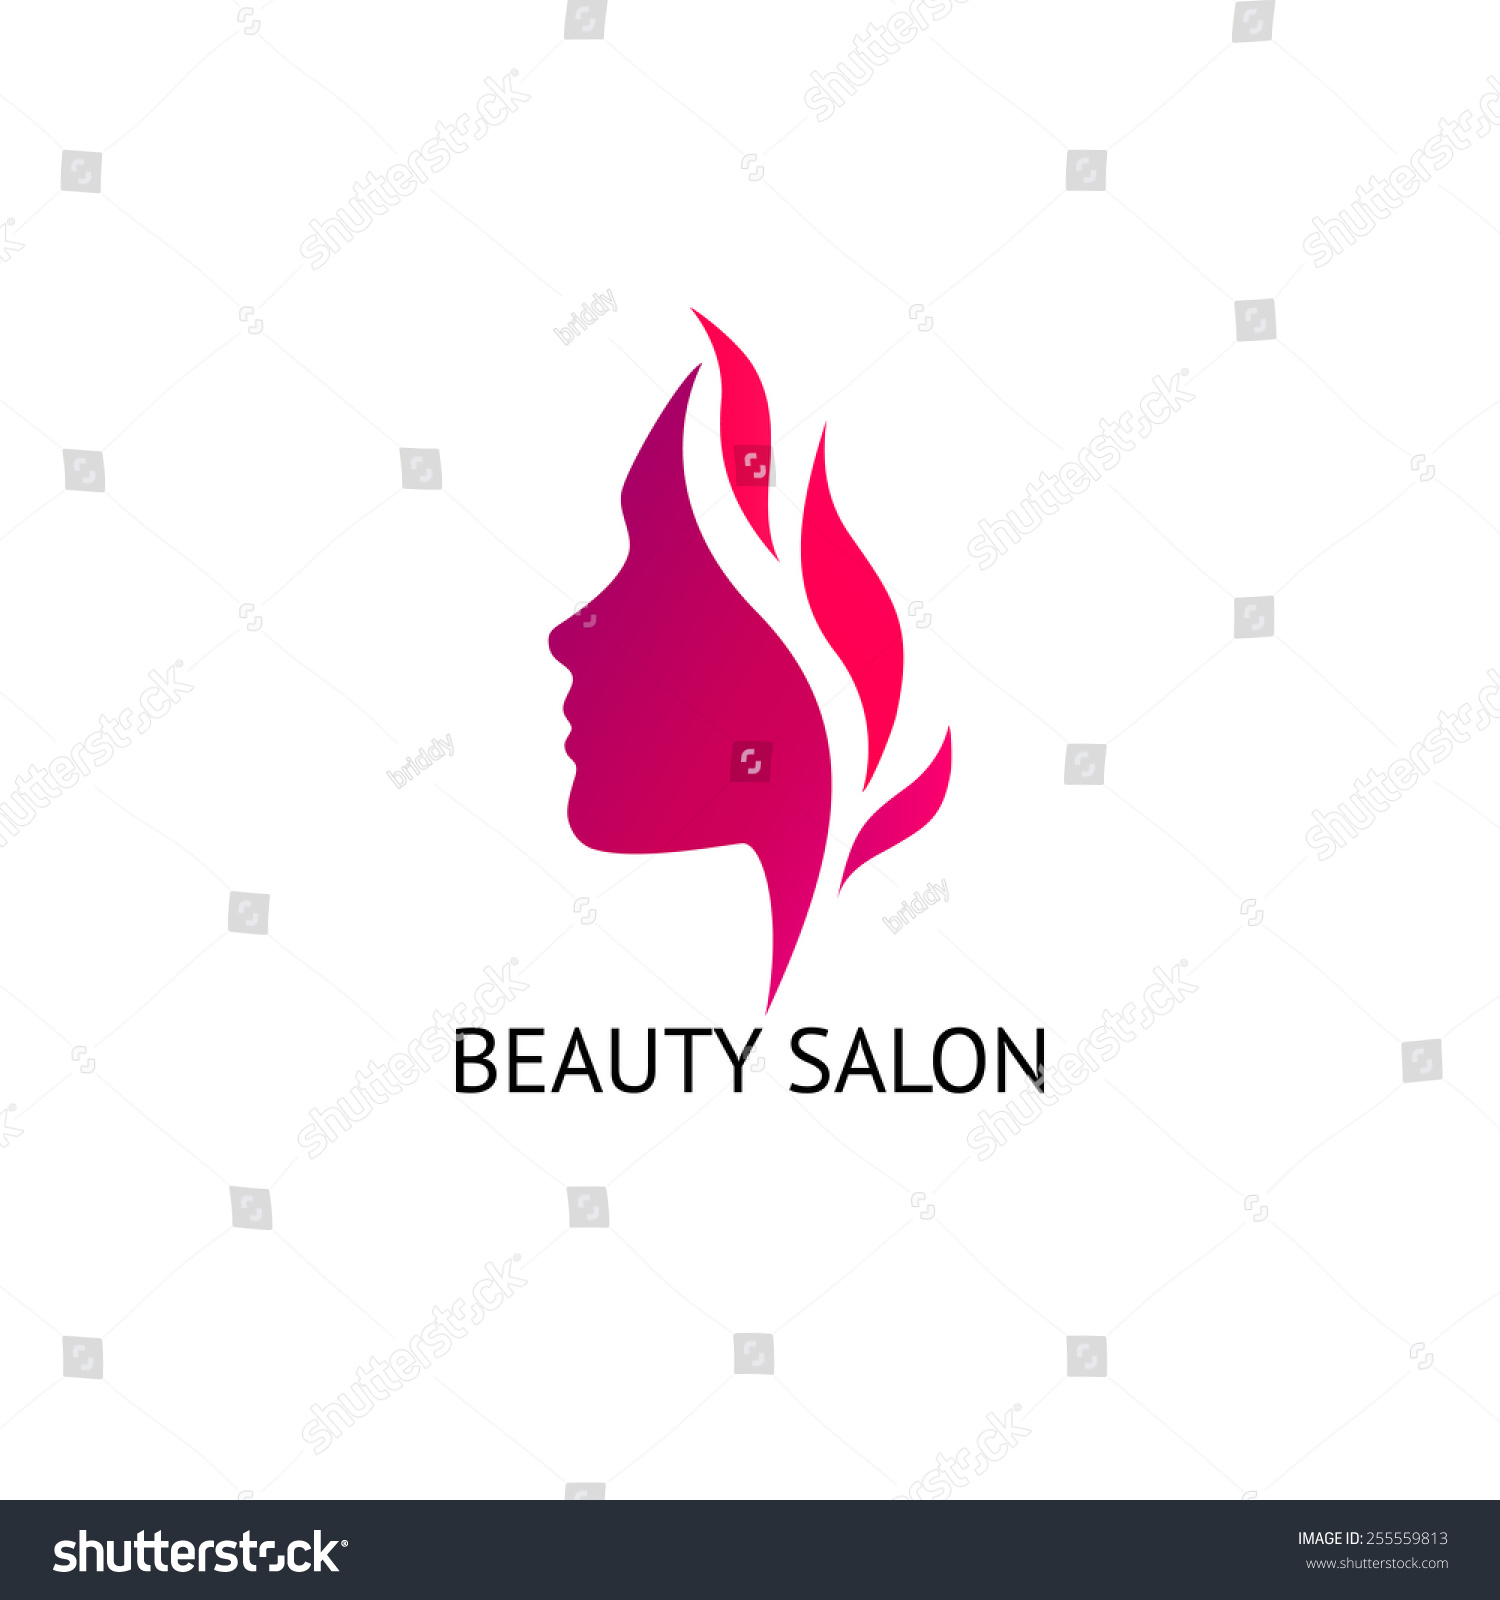 Womans face silhouette abstract business concept stock for Abstract beauty salon